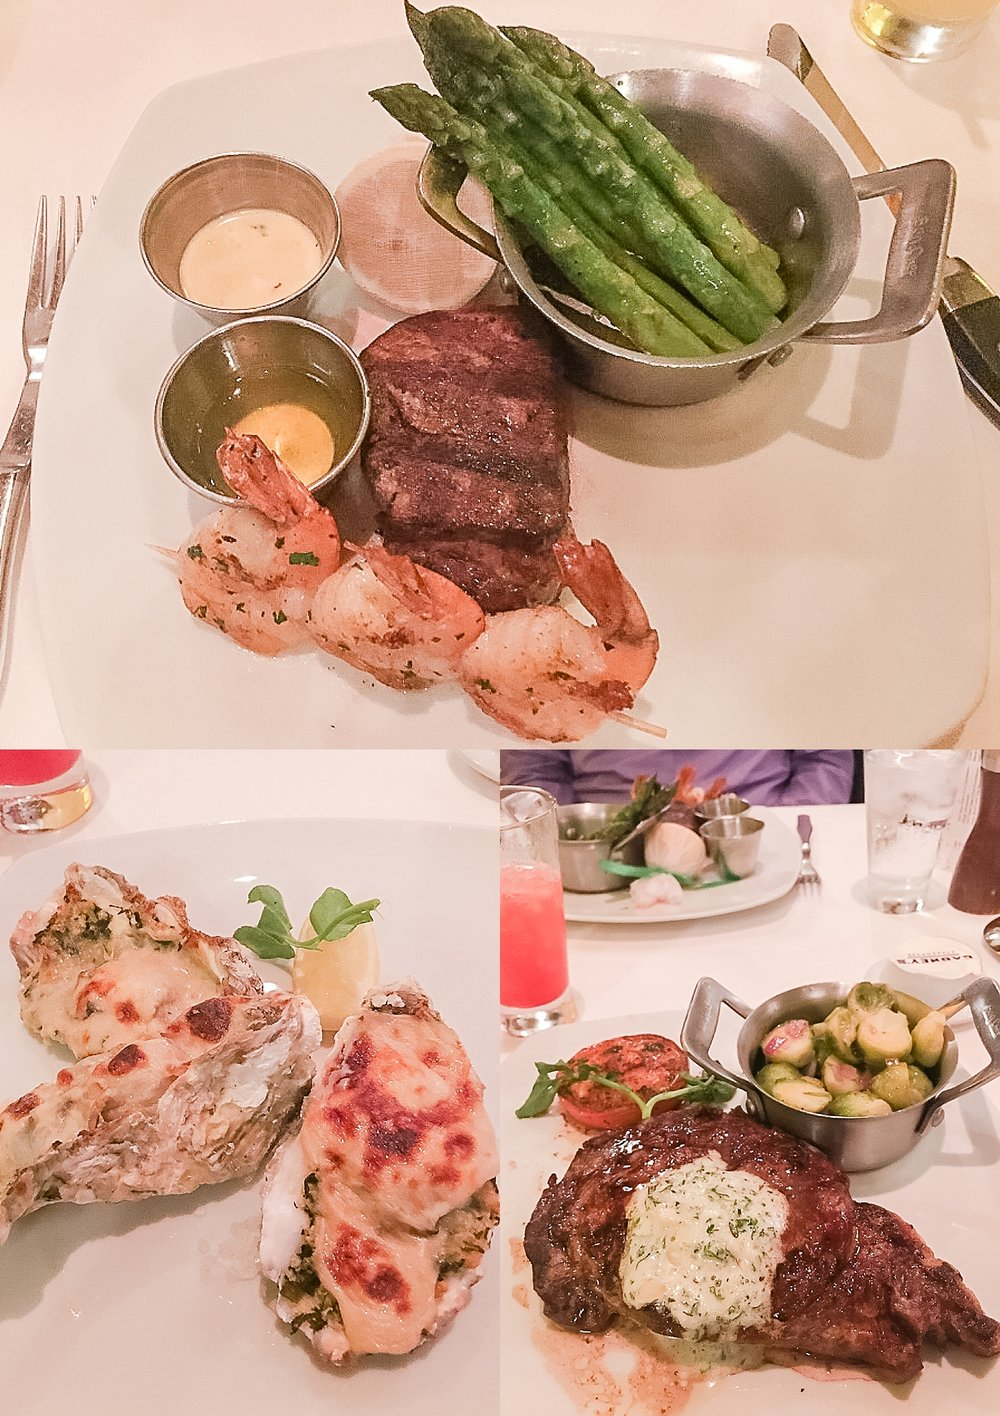 Dinner at Cagney's Steakhouse on the Pride of America cruise ship. Photos by Jade Min Photography.